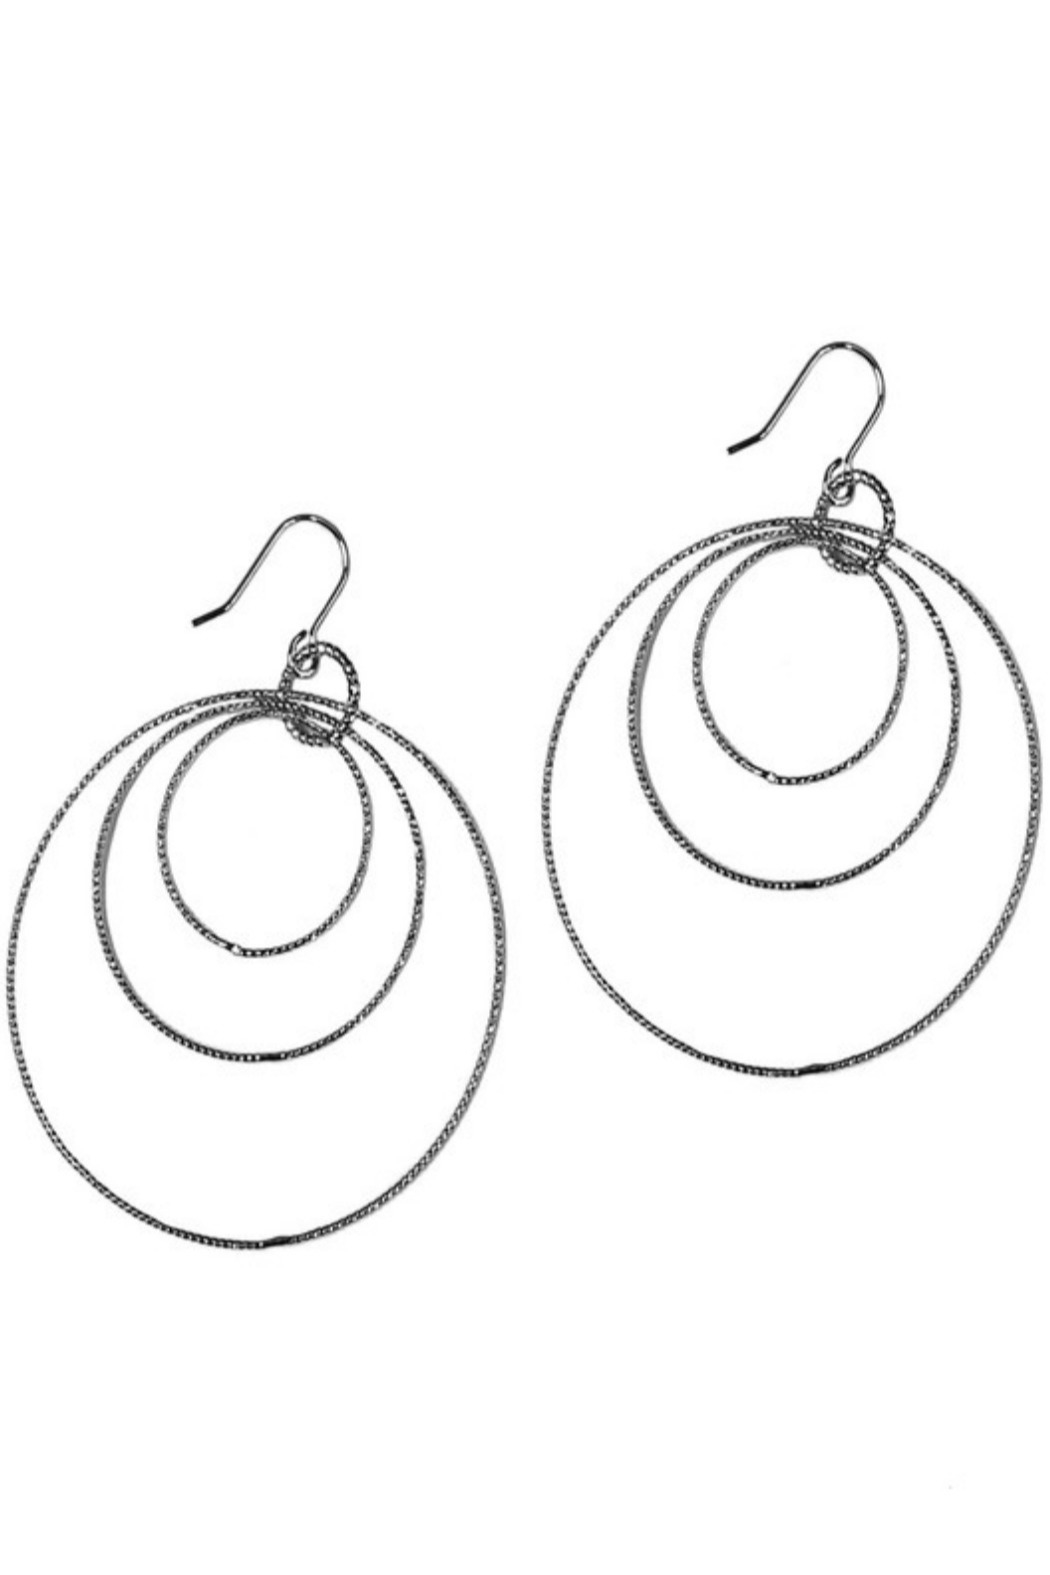 Girly 3 Linked Circles Hoop Earrings - Main Image